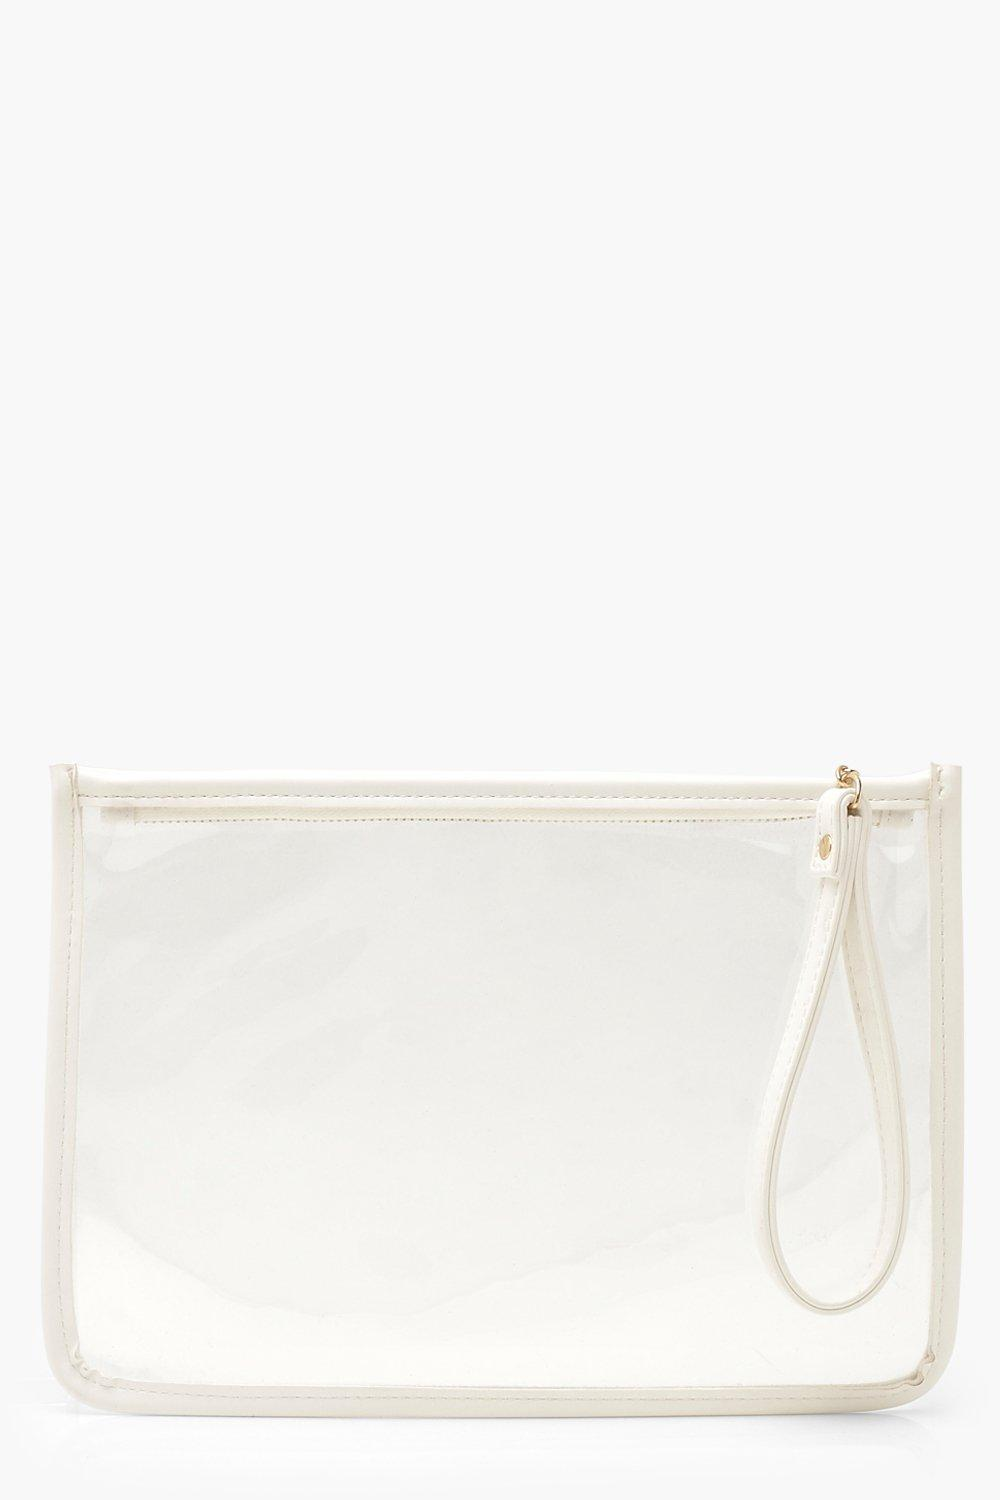 boohoo Womens Pu Clear Zip Top Travel Pouch With Handle - White - One Size, White